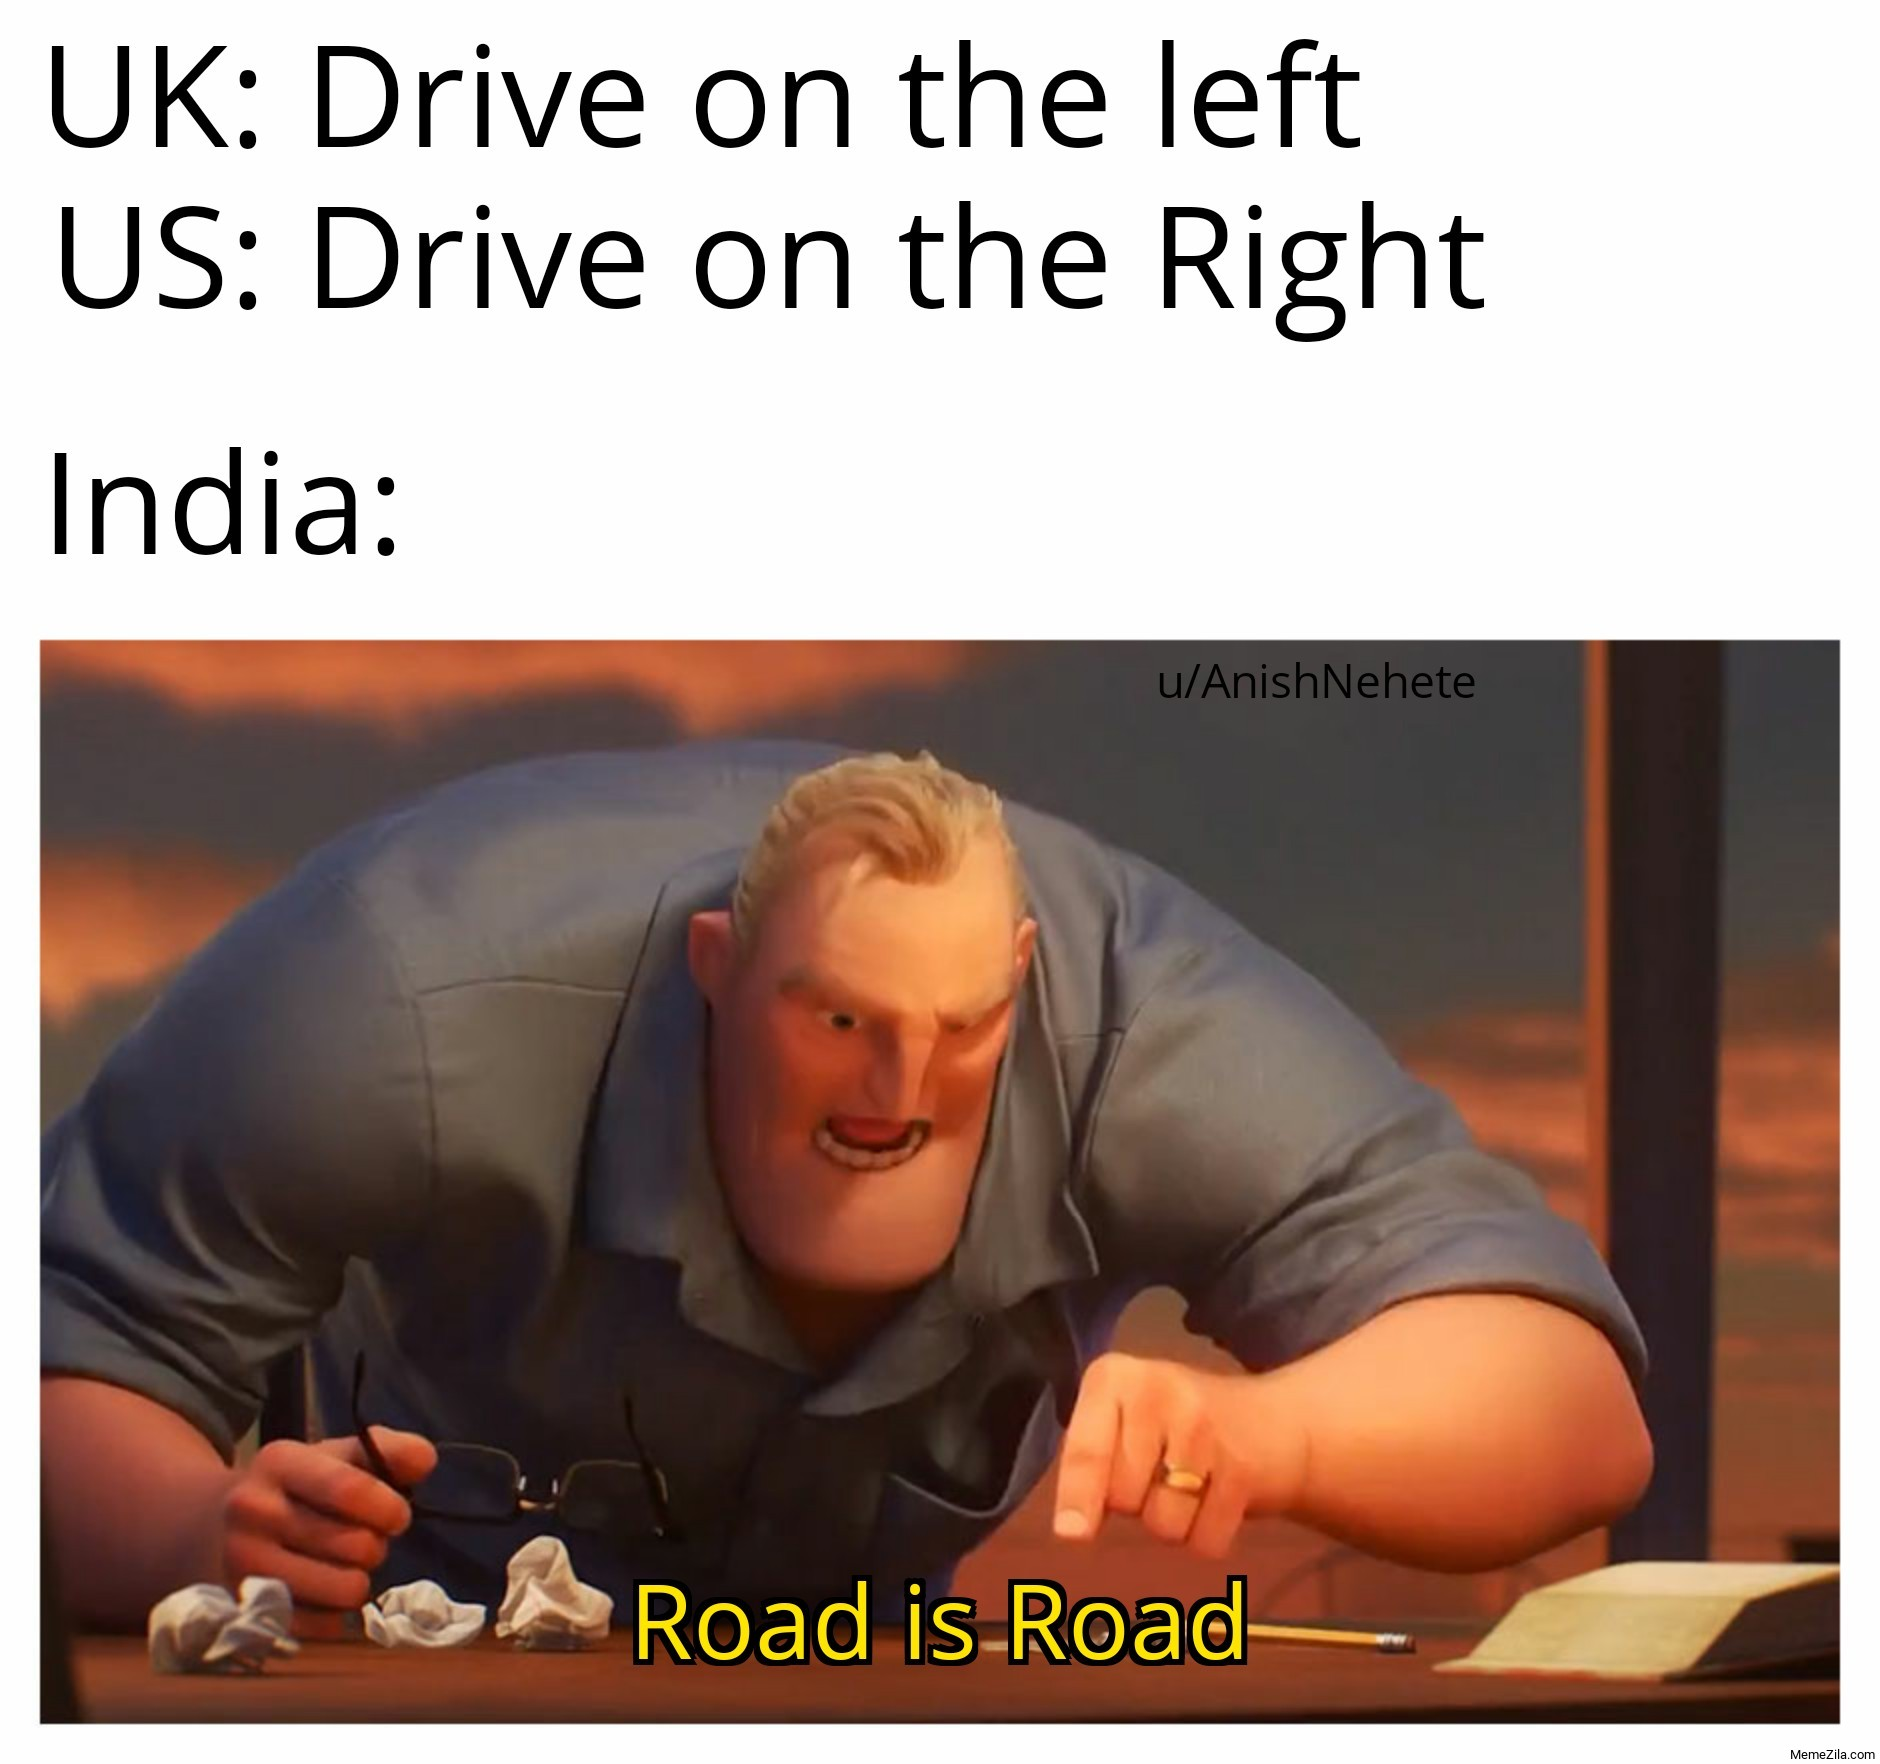 UK Drive on the left US Drive on the right India Road is road meme